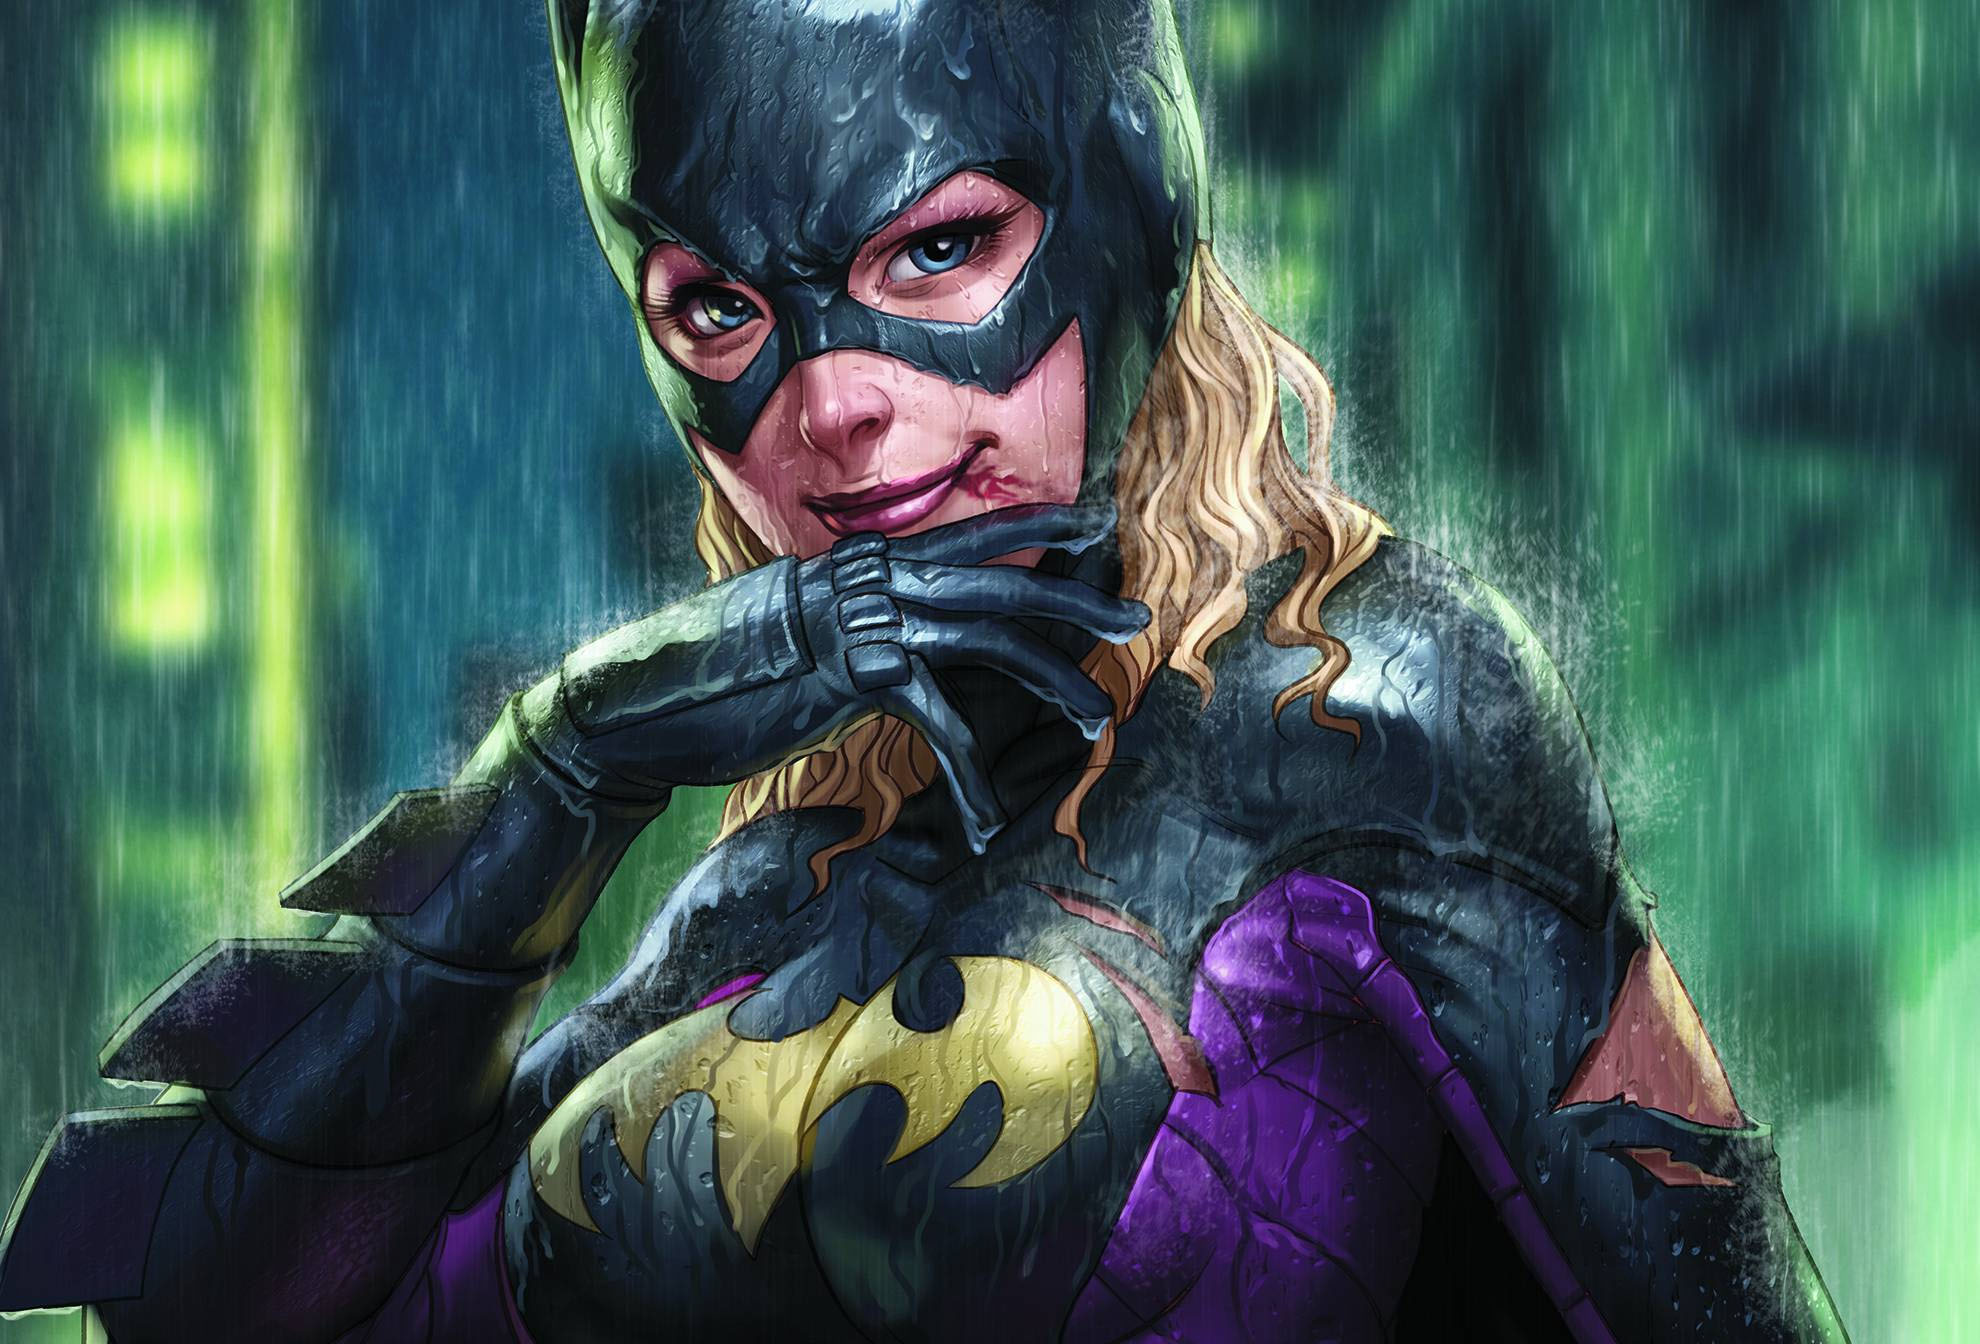 Download Female Superhero Wallpapers For Chrome 1980x1344